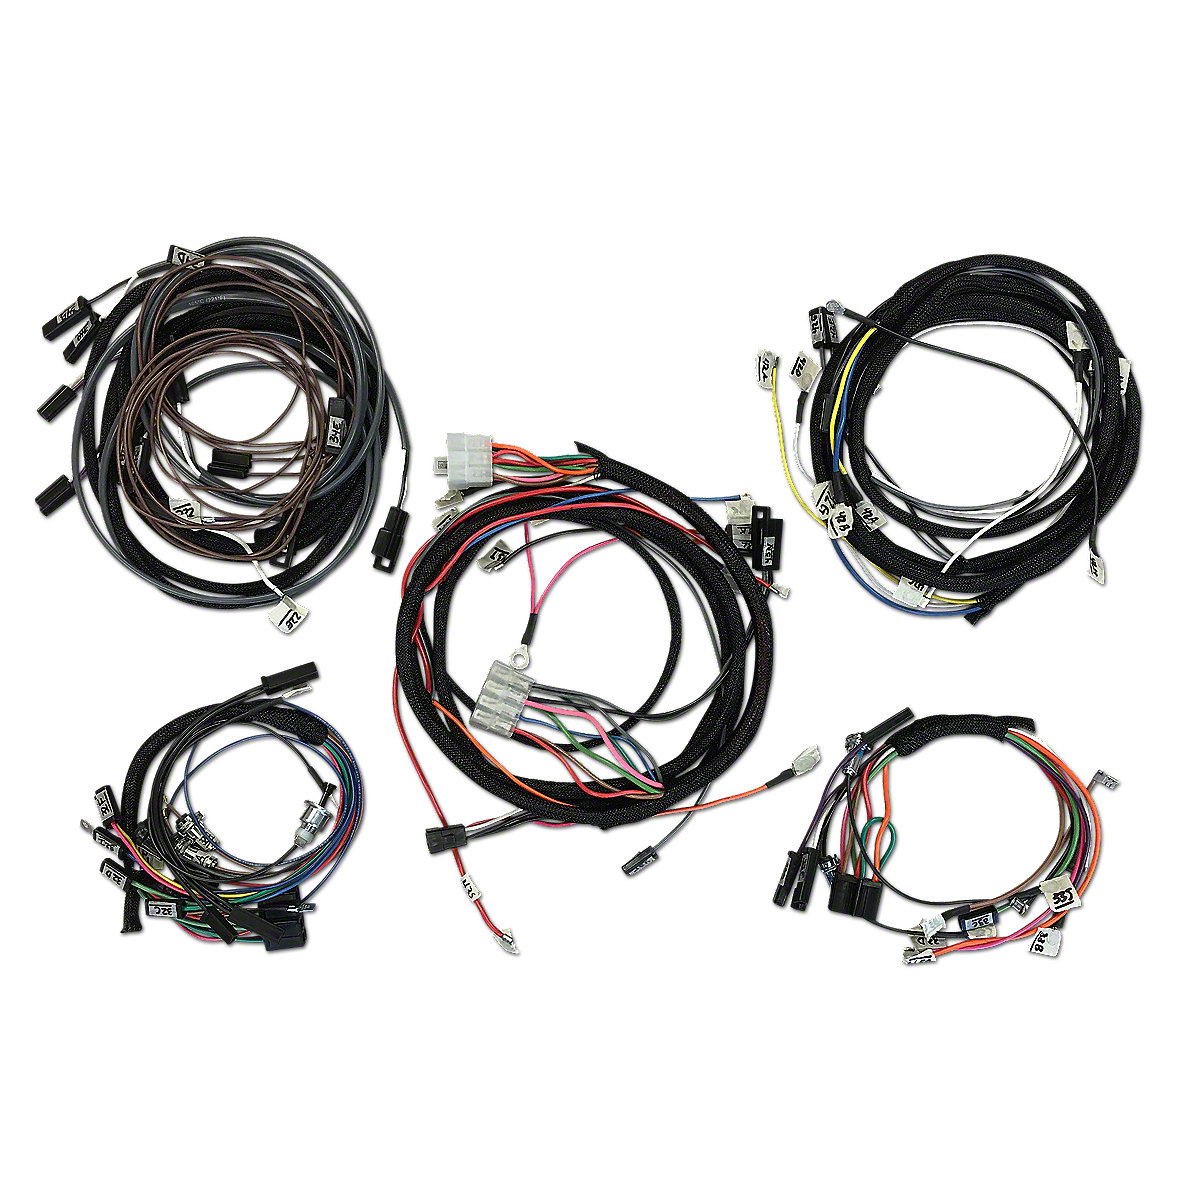 restoration quality wiring harness ihs3543